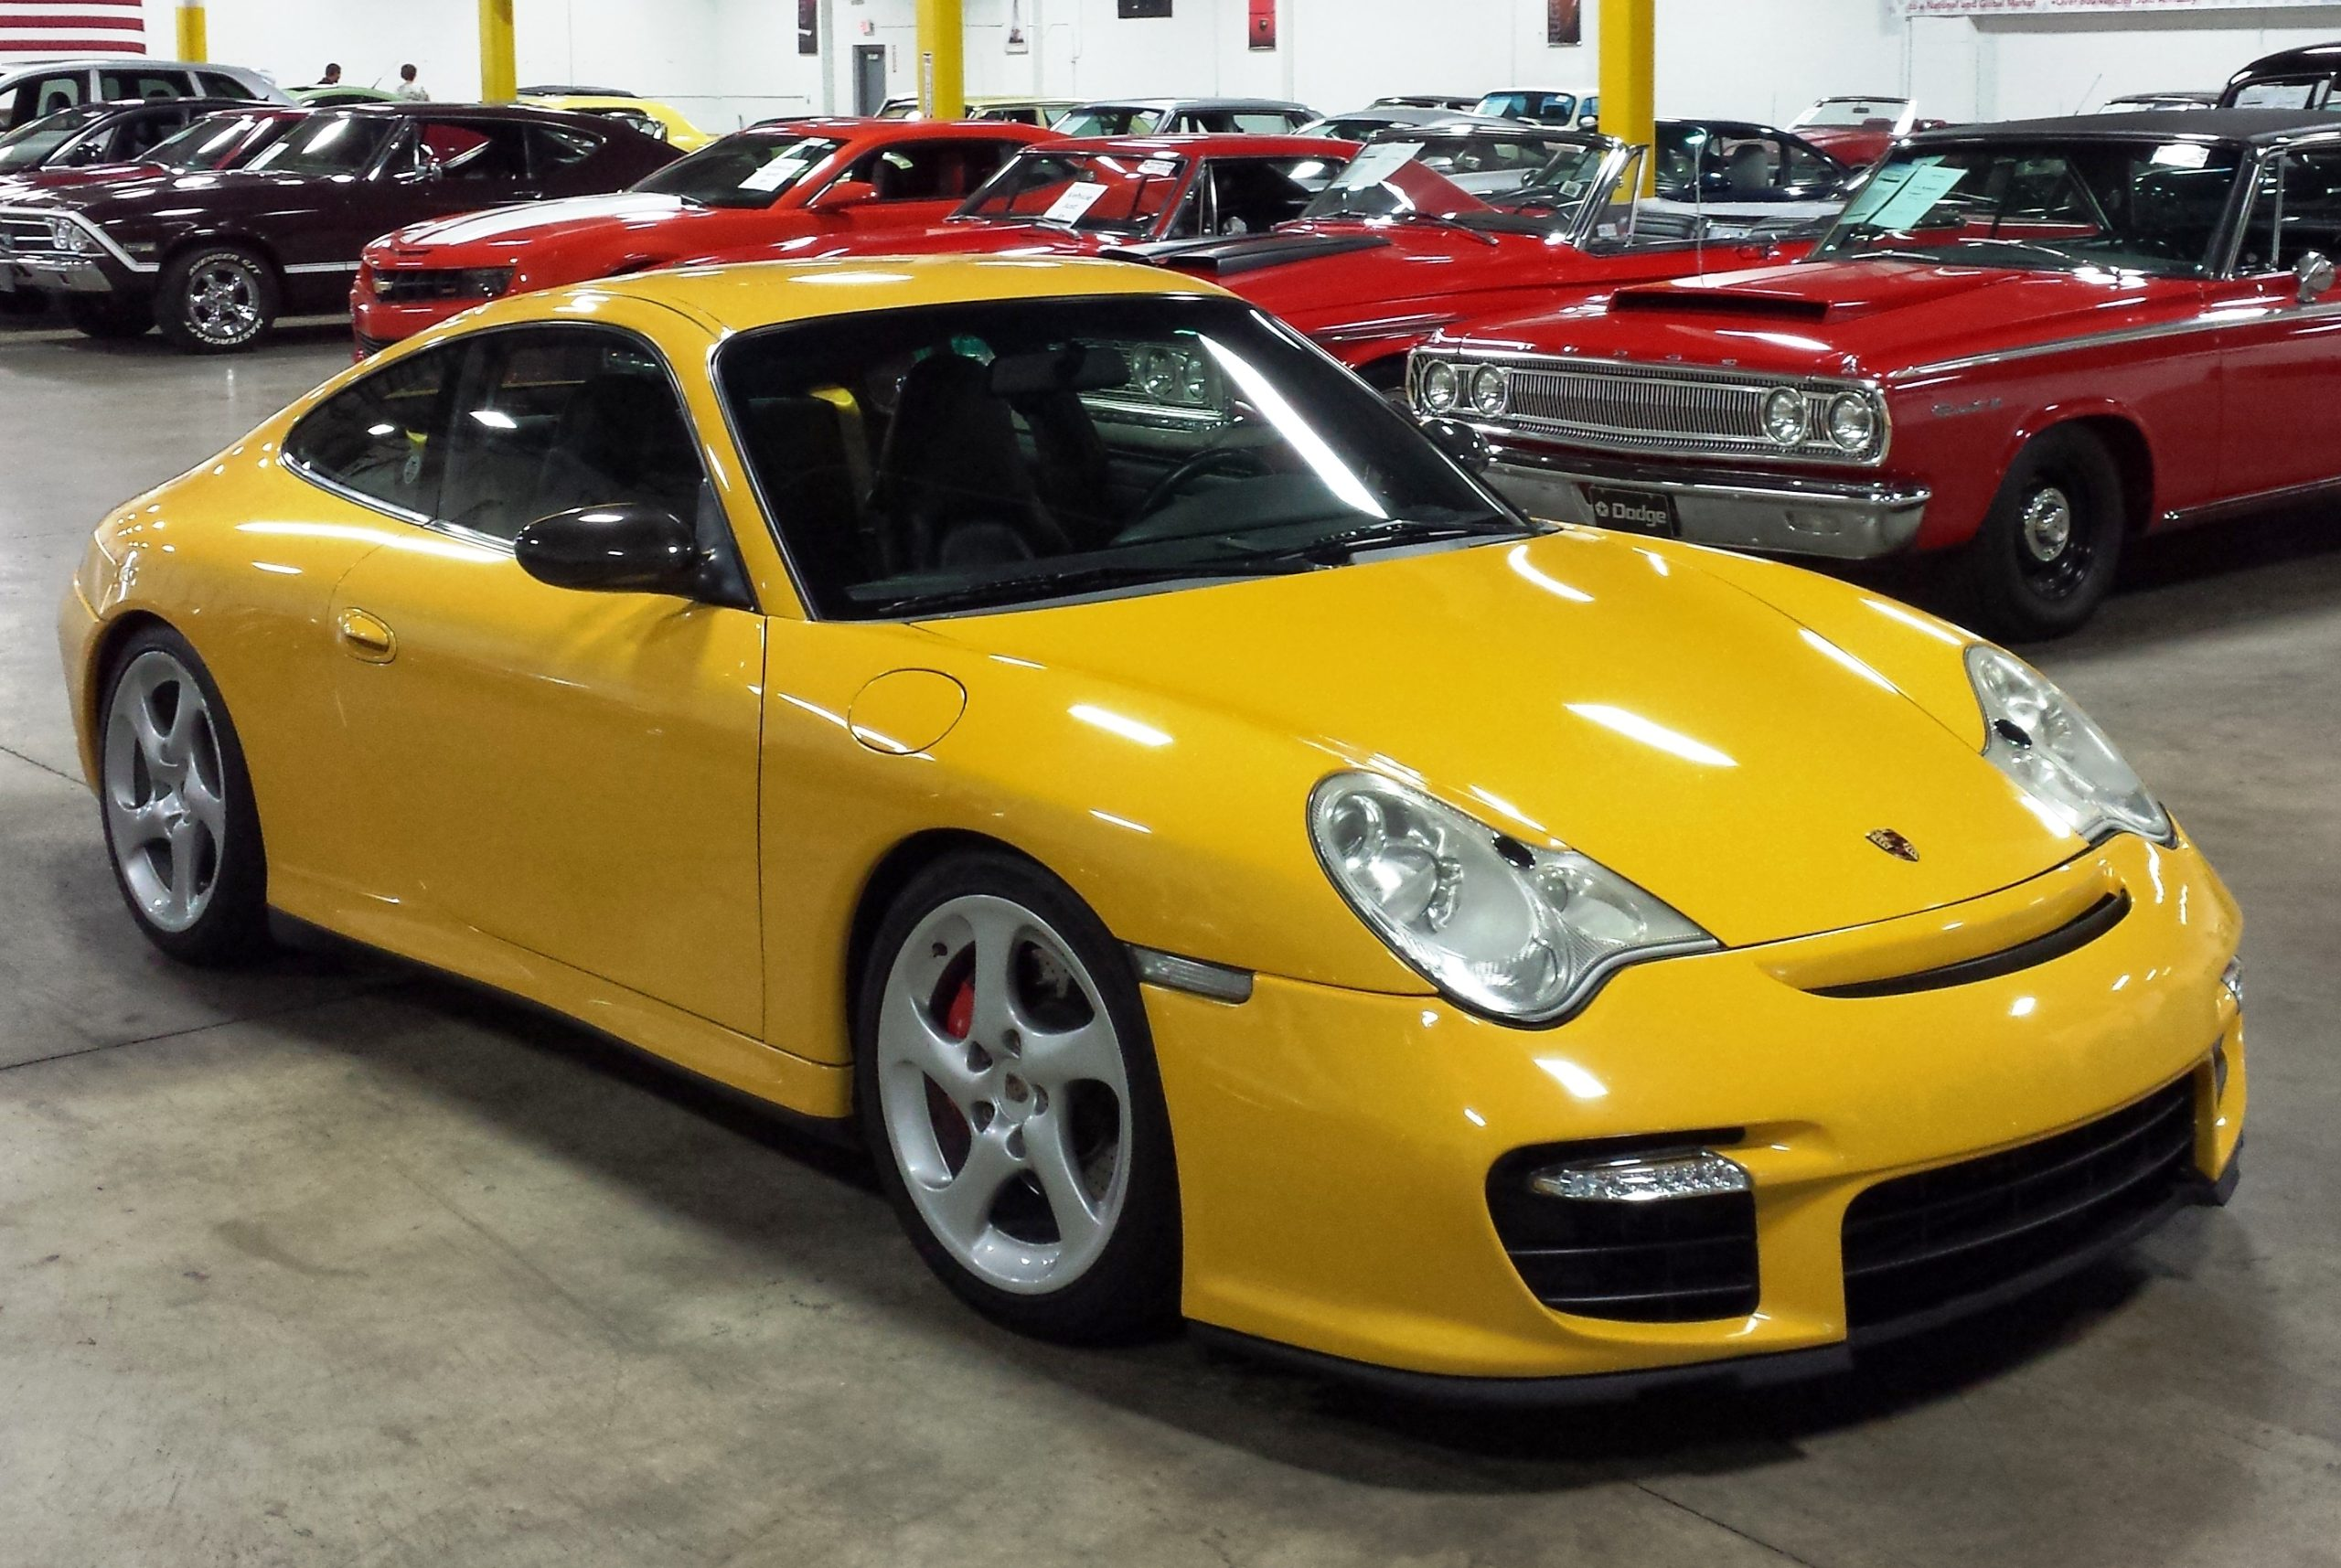 Porsche 996 Turbo Yellow Www Pixshark Com Images